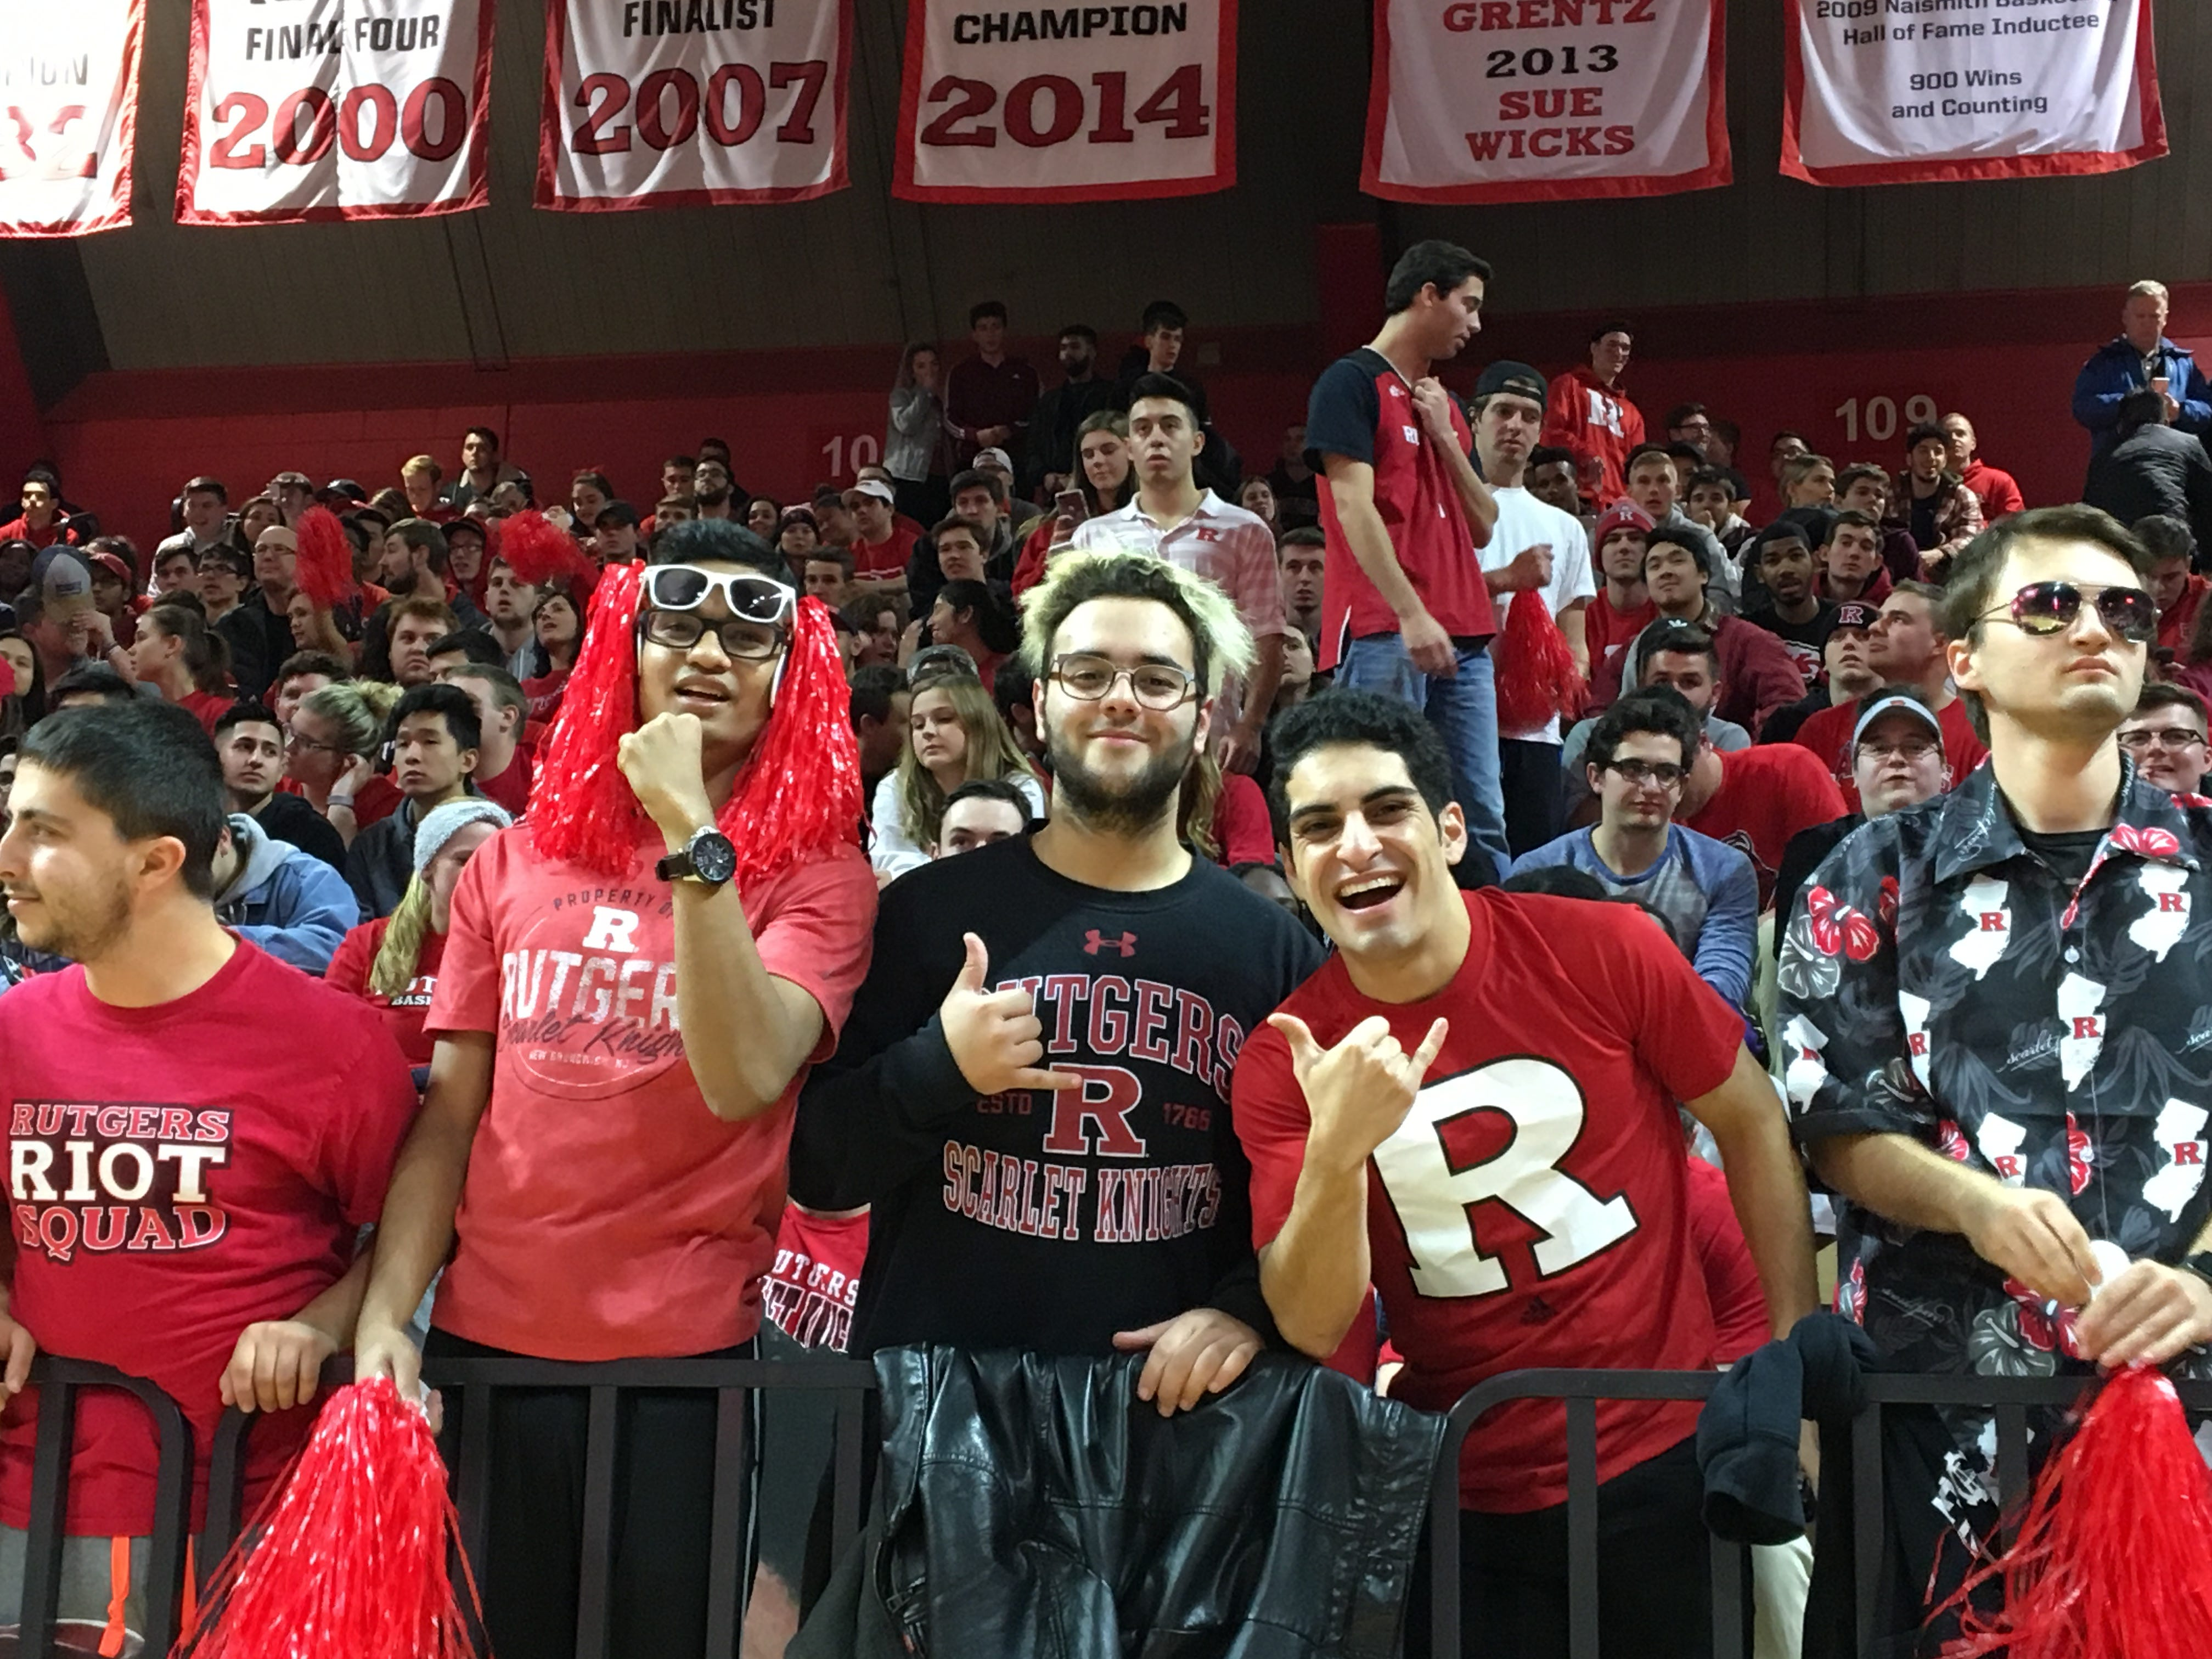 Rutgers basketball: St. John's deflates packed RAC with reality check